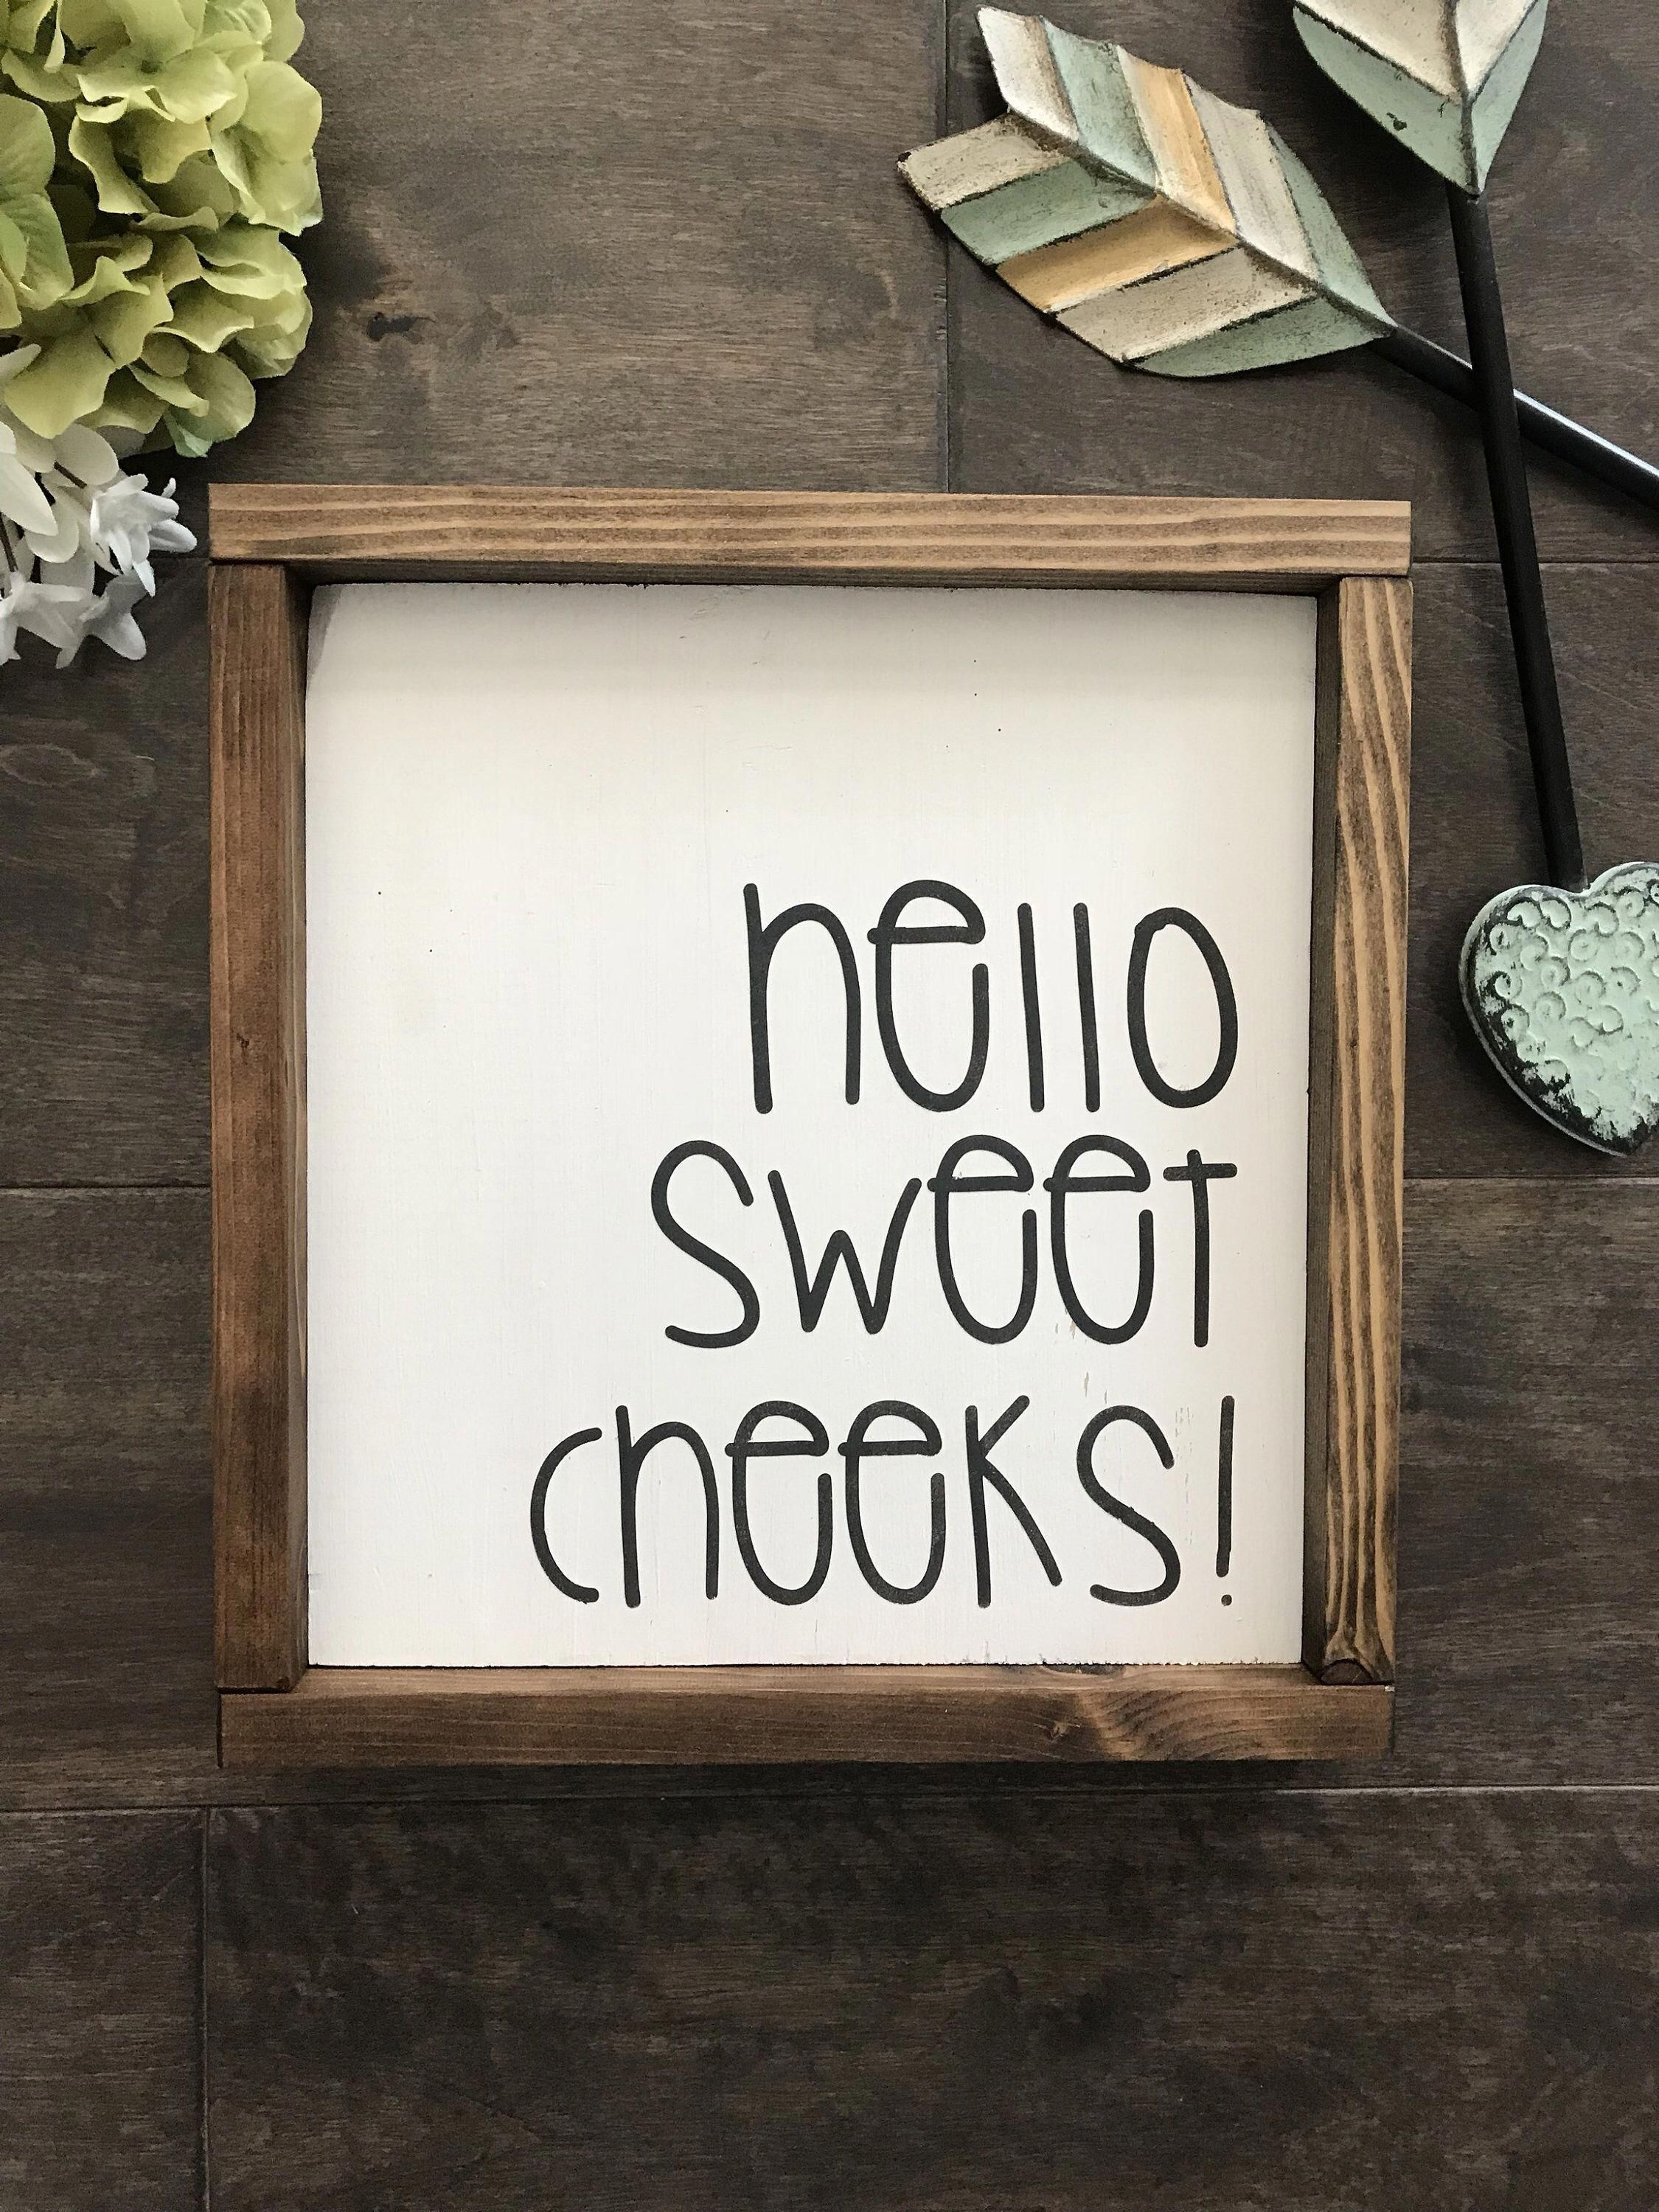 Photo of Wood Sign | Hello Sweet Cheeks | Bathroom Humor | Farmhouse Style | Rustic Home Decor | Wall Hanging | Gallery Wall | Best Selling Items